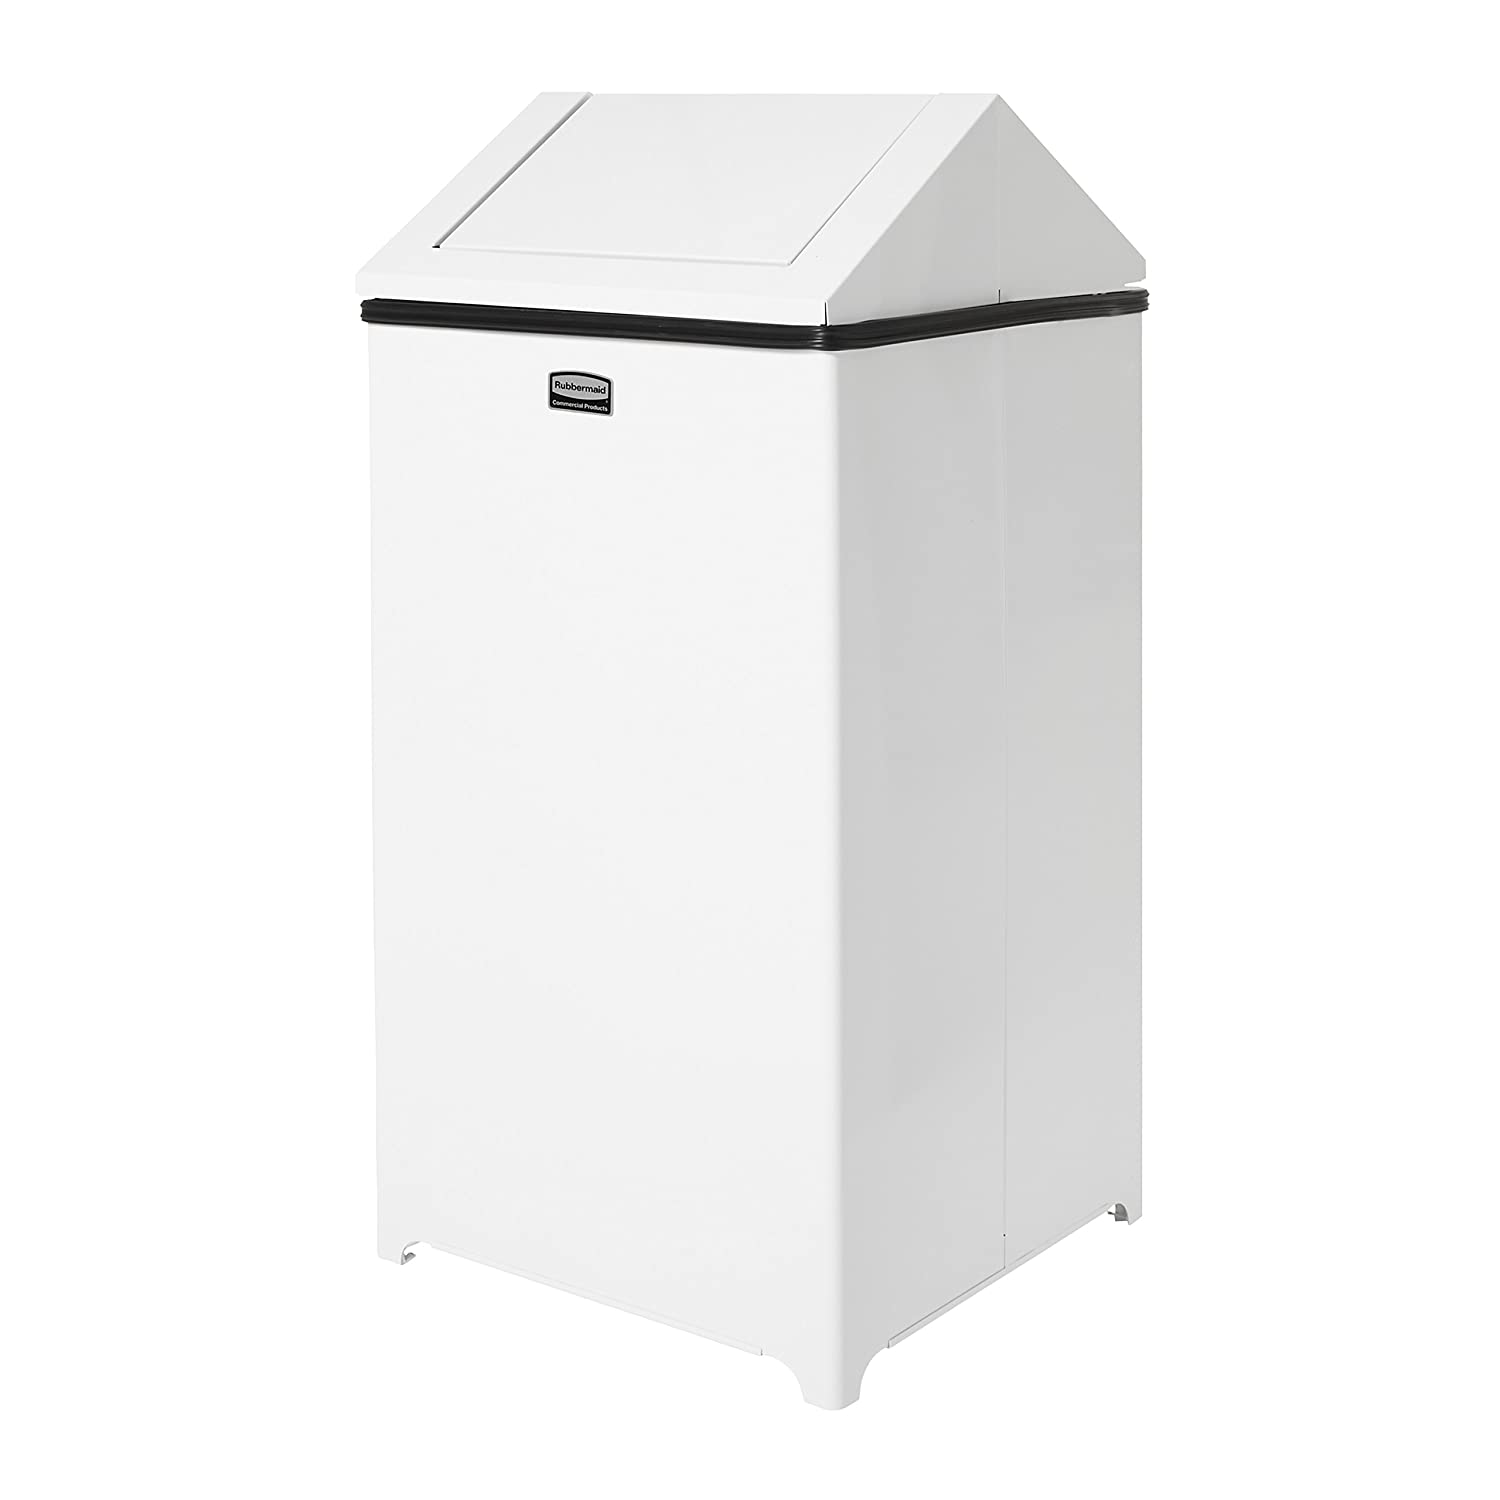 Rubbermaid Commercial FGT1424EPLWH WasteMaster Steel 24-Gallon Hinged Top Indoor Utility Trash Can White